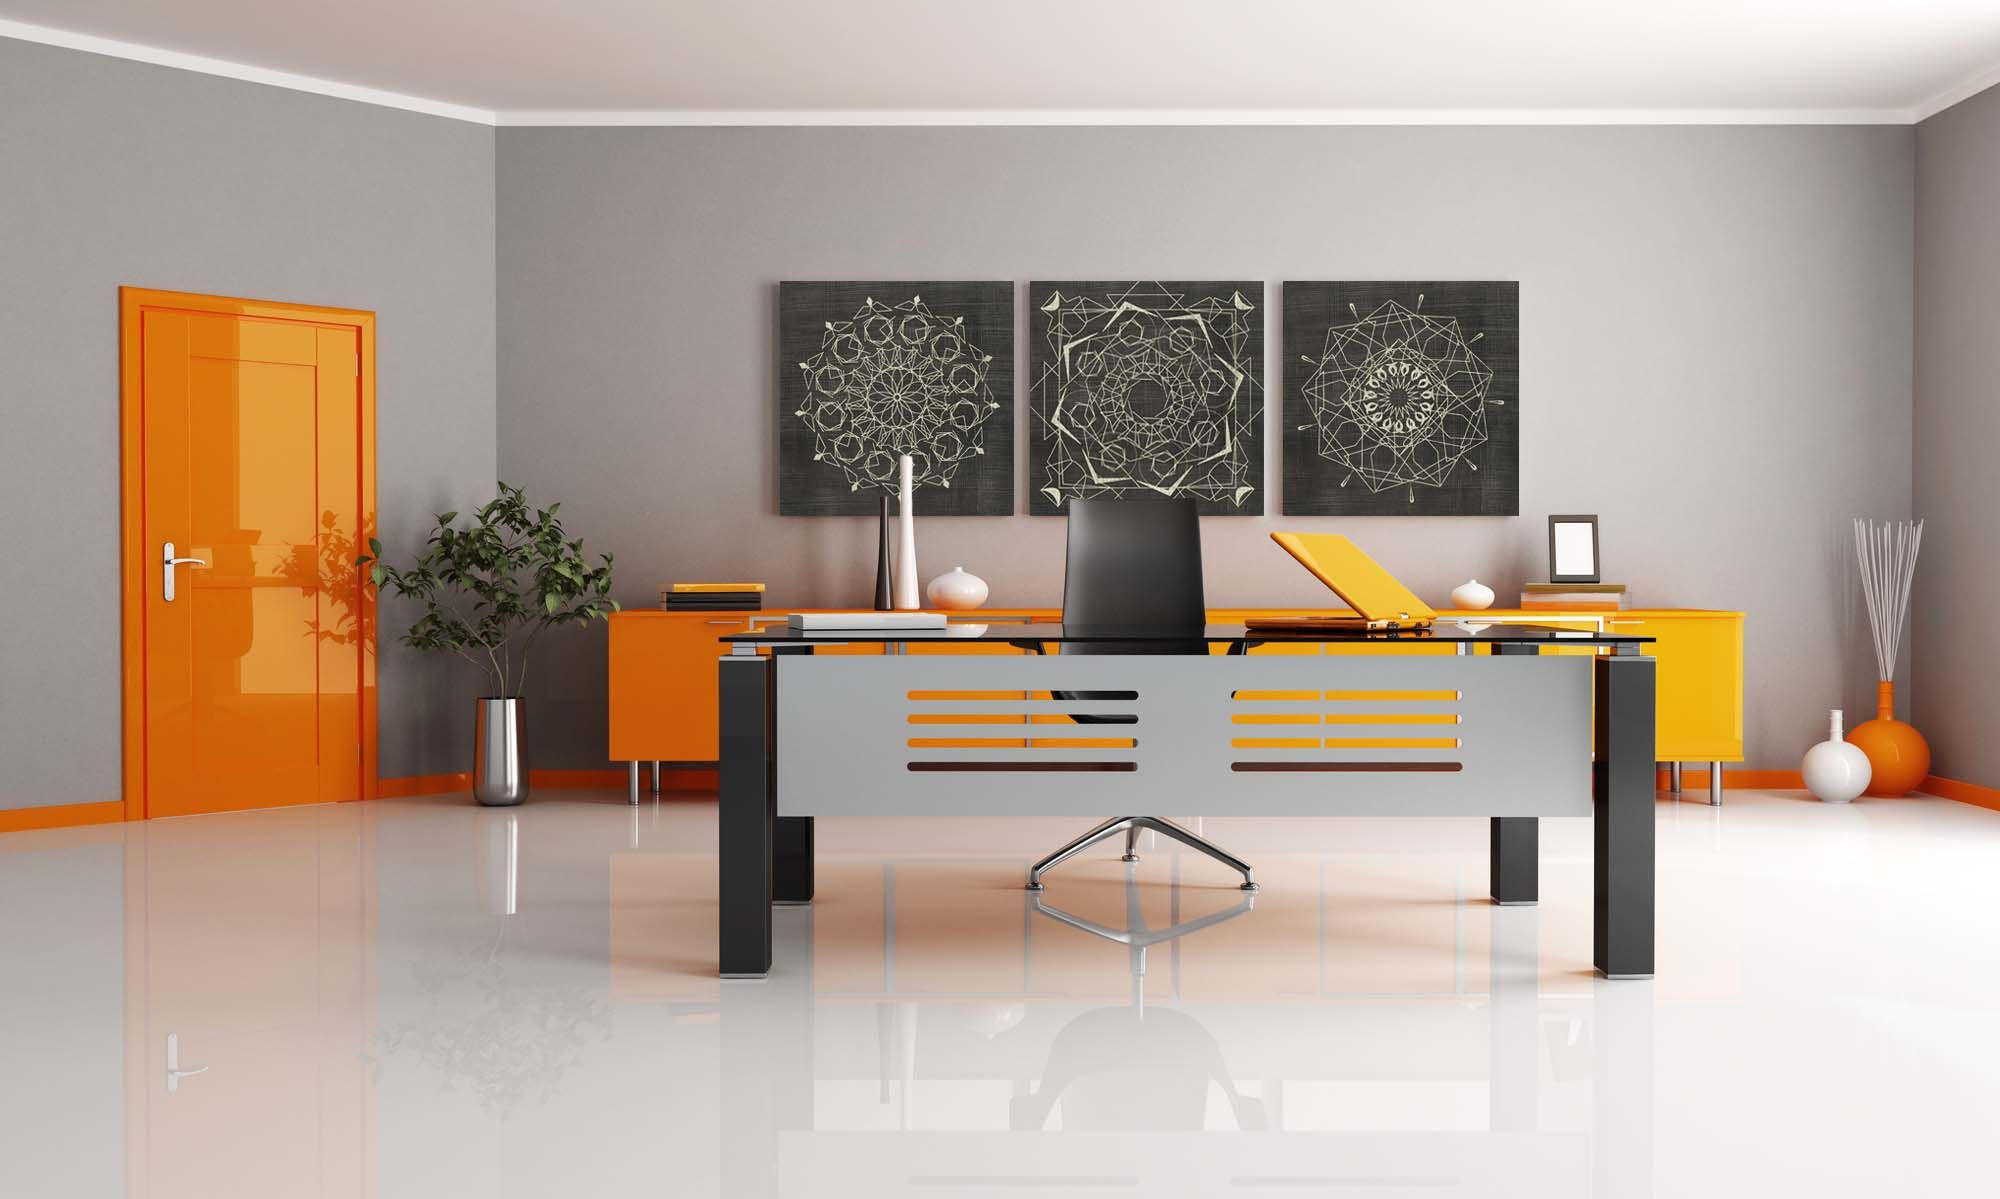 Floor And Decor Corporate Office. Call Text for sizes  pricing t 317 402 5040 e Corporate Office sgooding